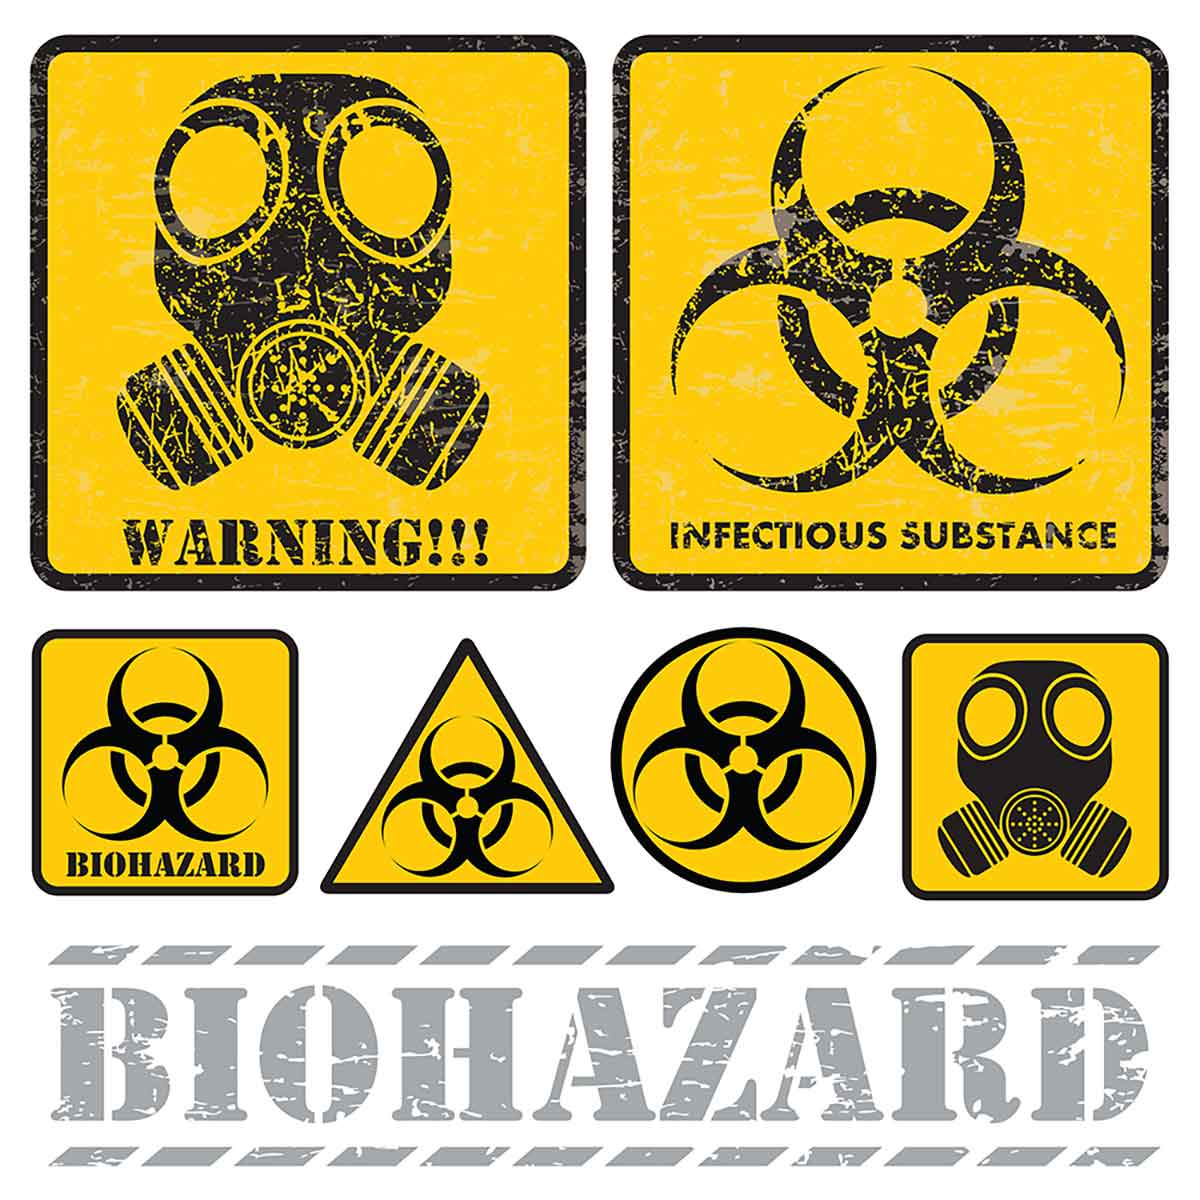 Biohazard Cleanup and Restoration in Philadelphia